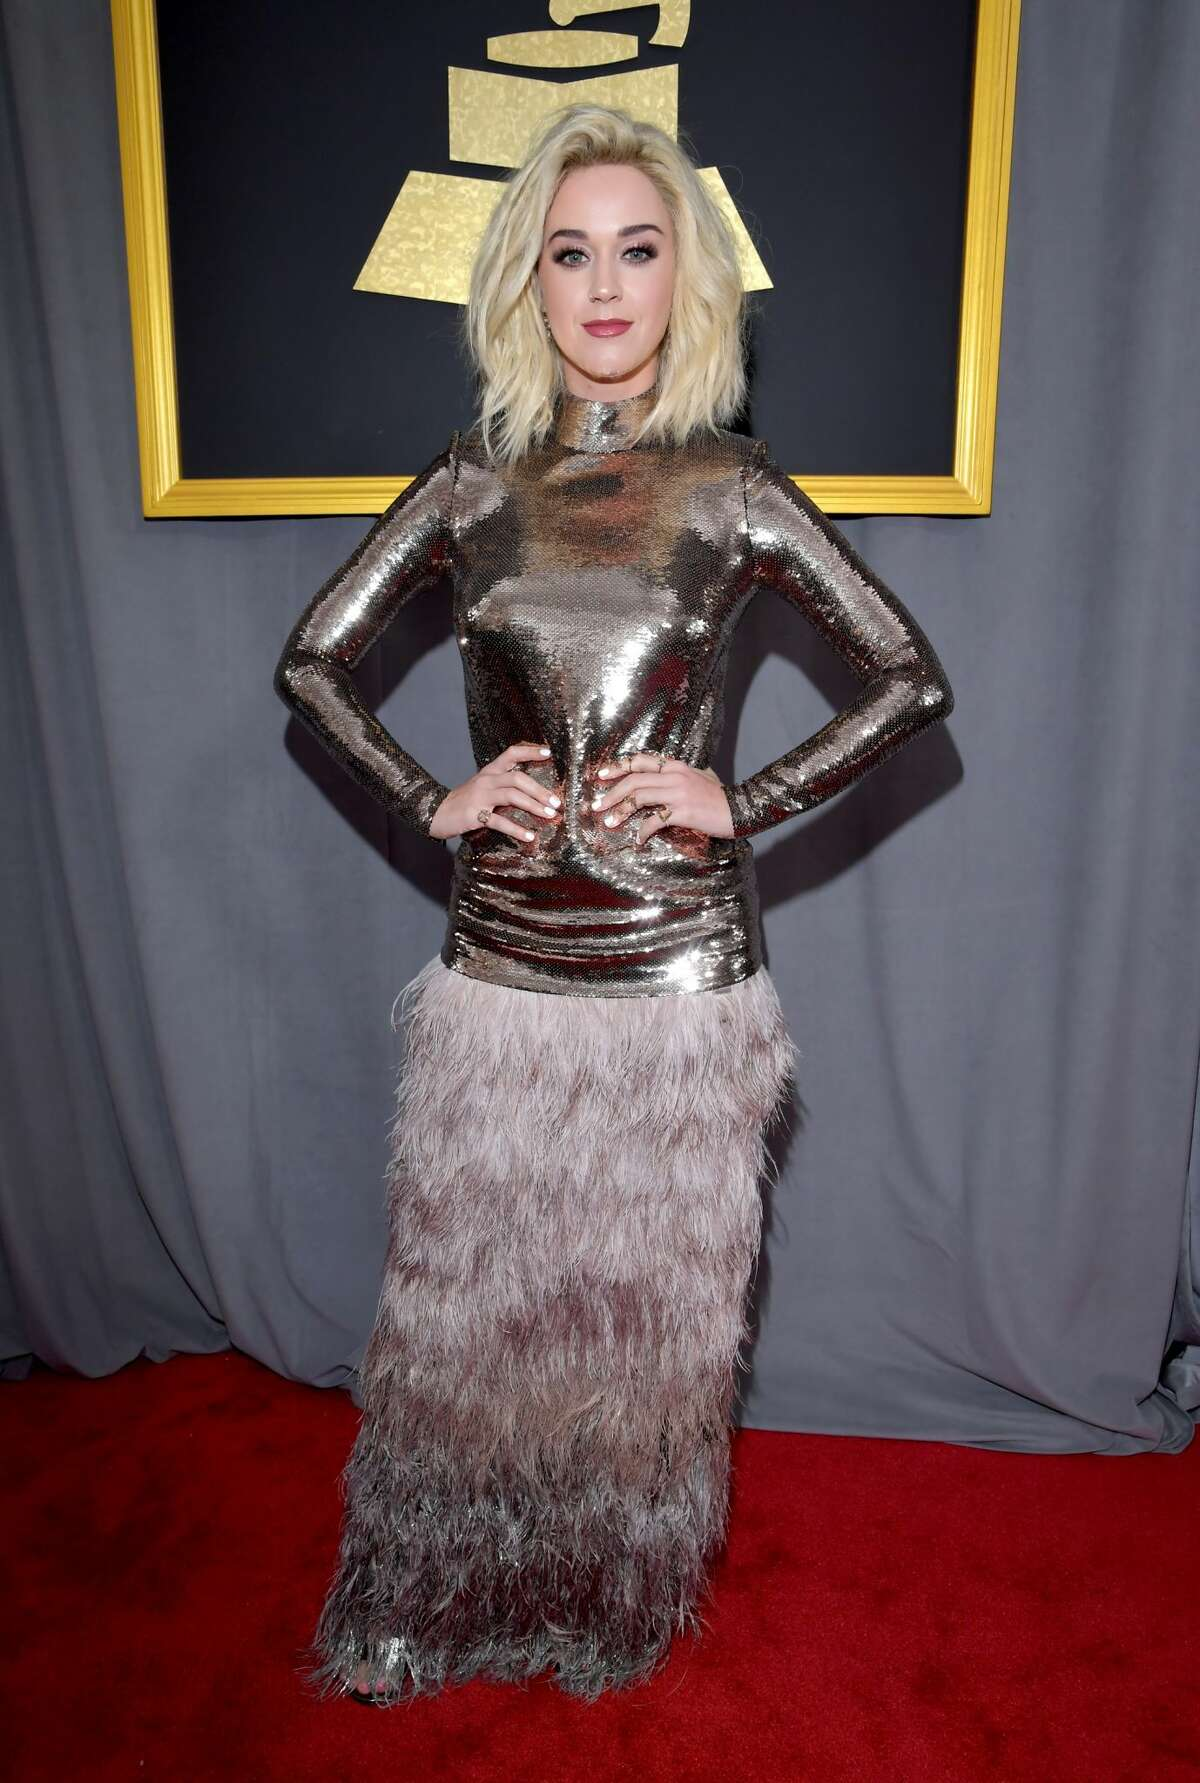 LOS ANGELES, CA - FEBRUARY 12: Recording artist Katy Perry attends The 59th GRAMMY Awards at STAPLES Center on February 12, 2017 in Los Angeles, California. (Photo by Lester Cohen/WireImage)